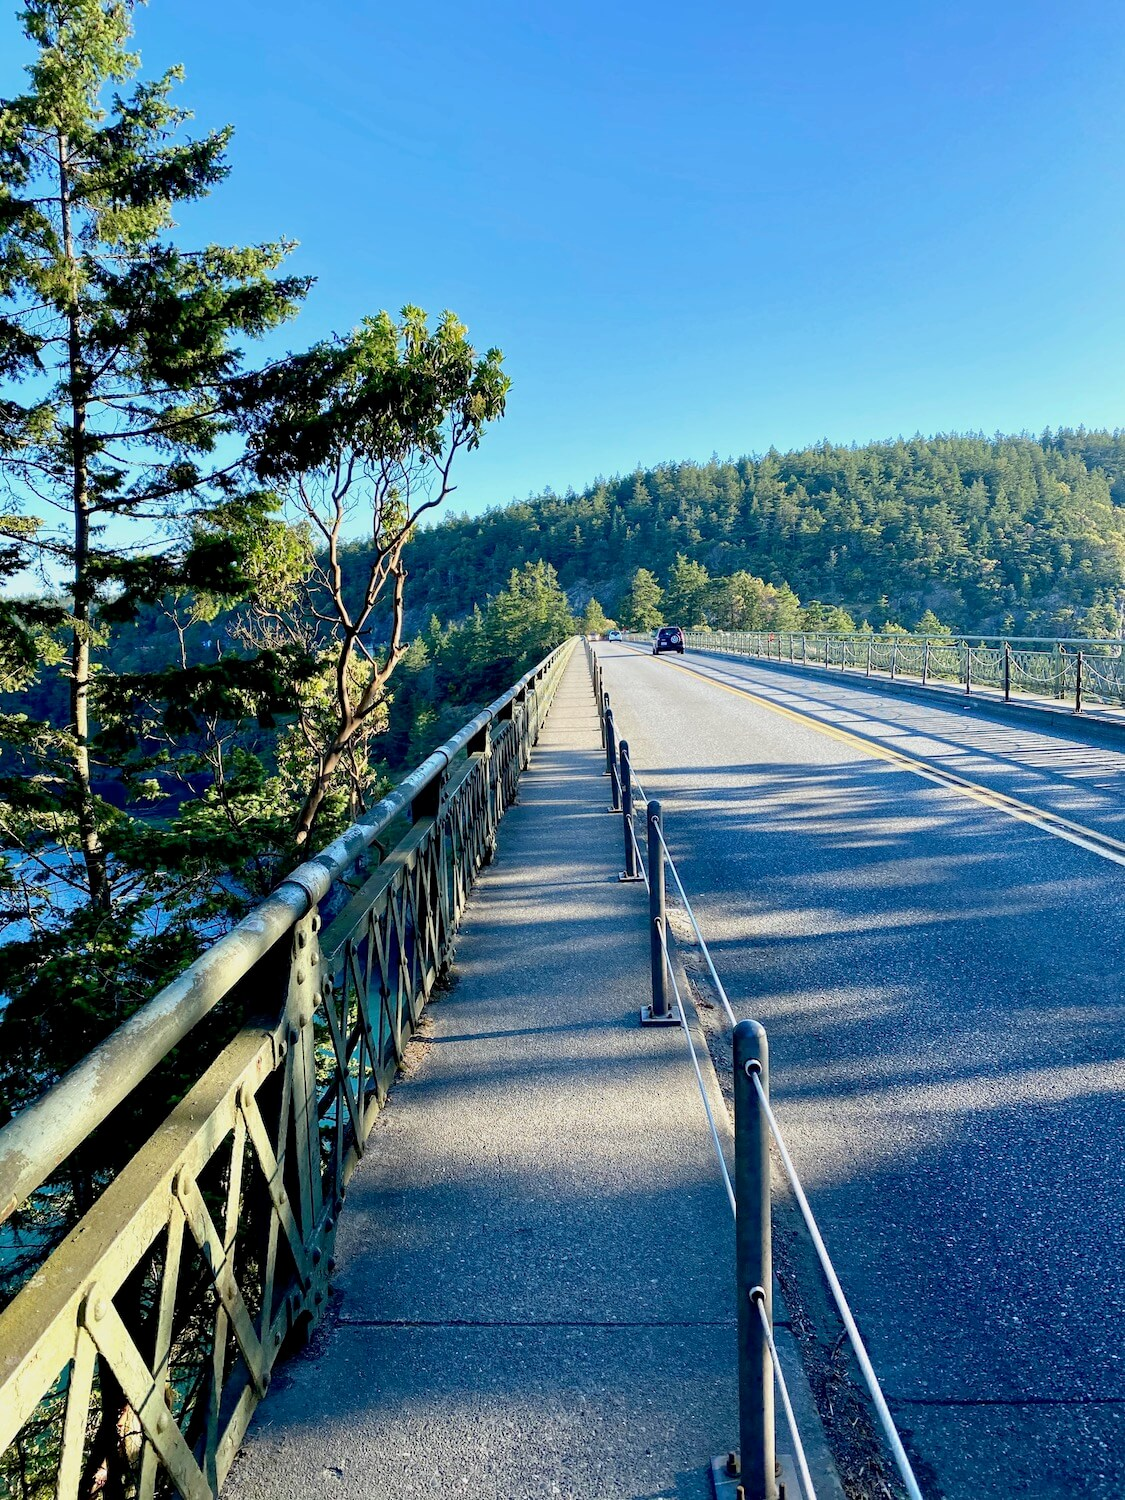 Deception Pass bridge on the highway toward Anacortes.  The narrow sidewalk on the left side of the busy road follows off into the back of the photo, while a fir tree frames the left side of the picture.  Two cars drive away from the camera towards a rolling hill of sound fir trees.